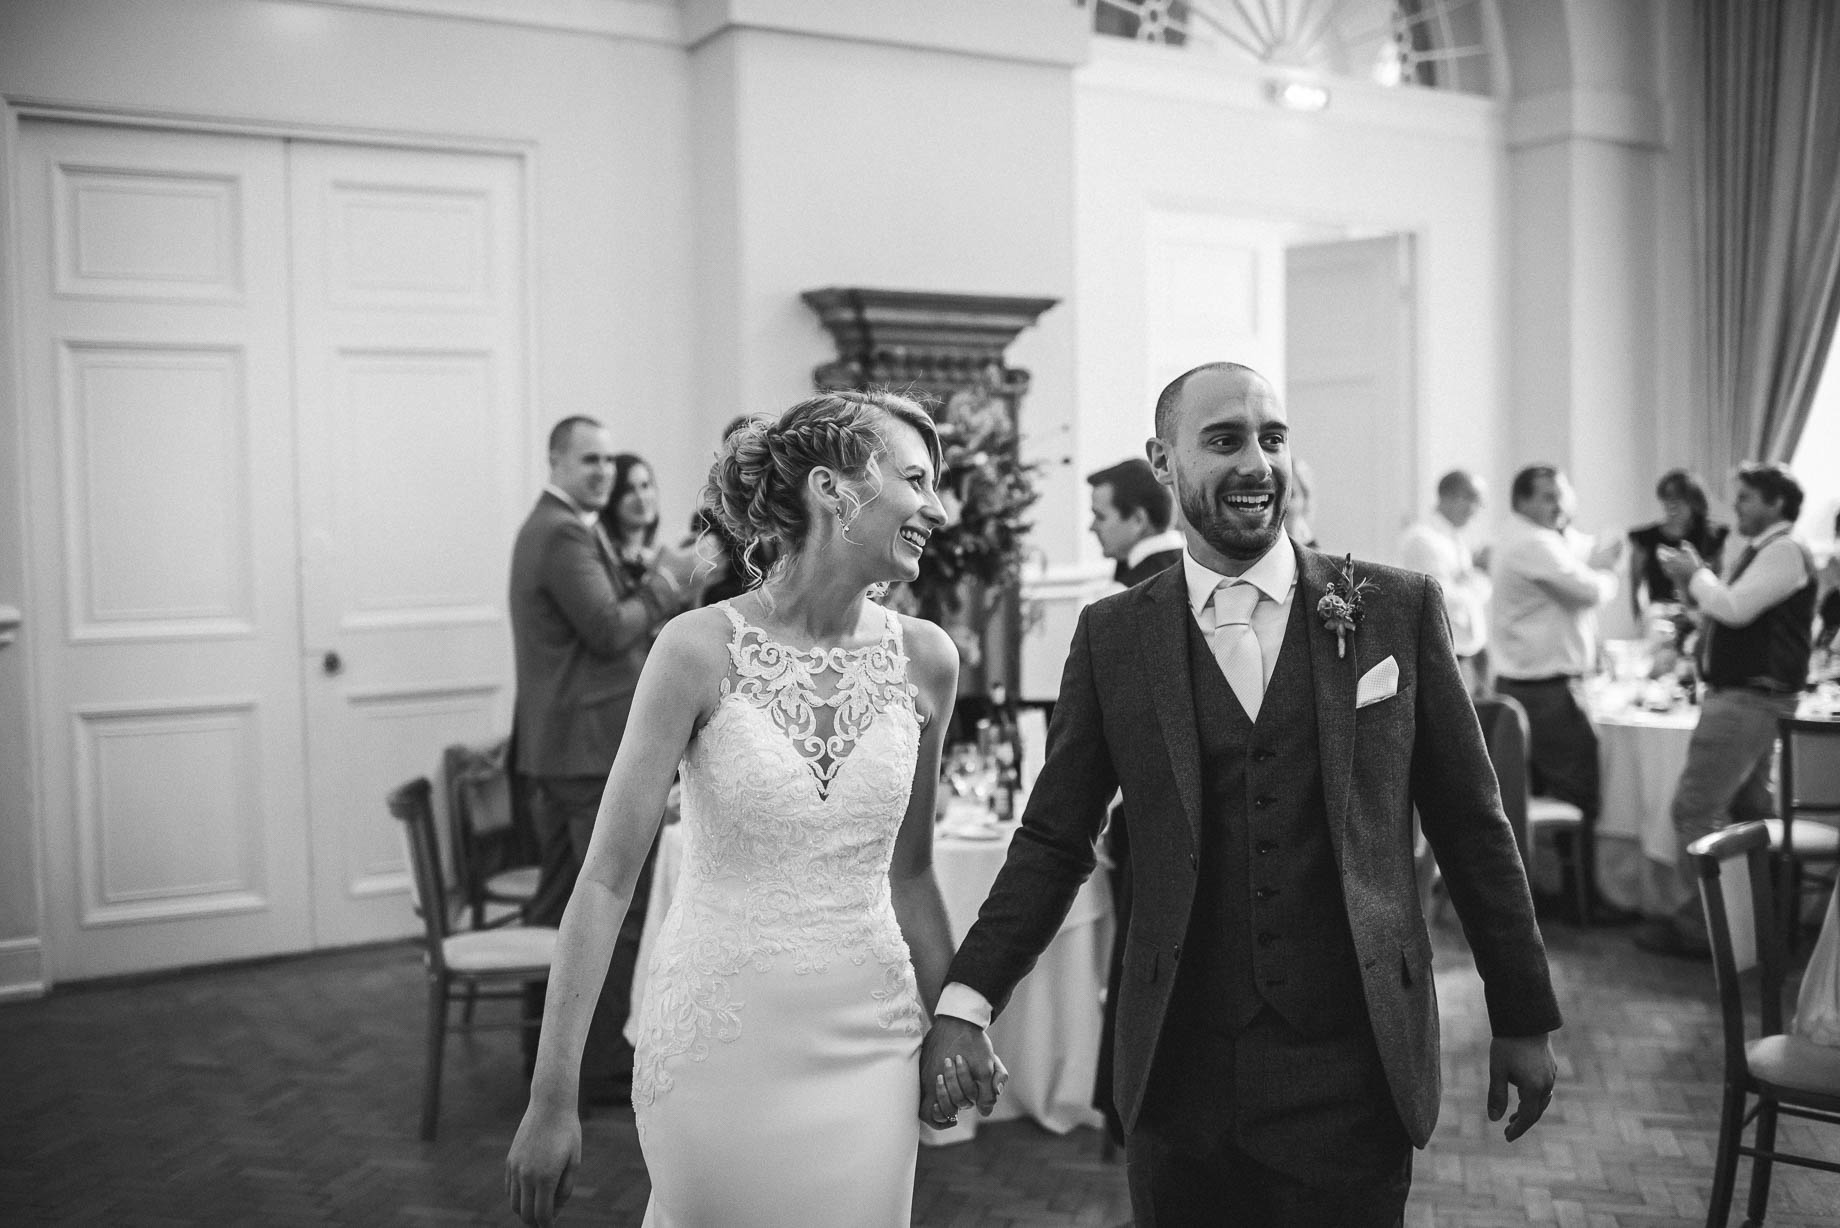 Farnham Castle wedding photography - Victoria + David